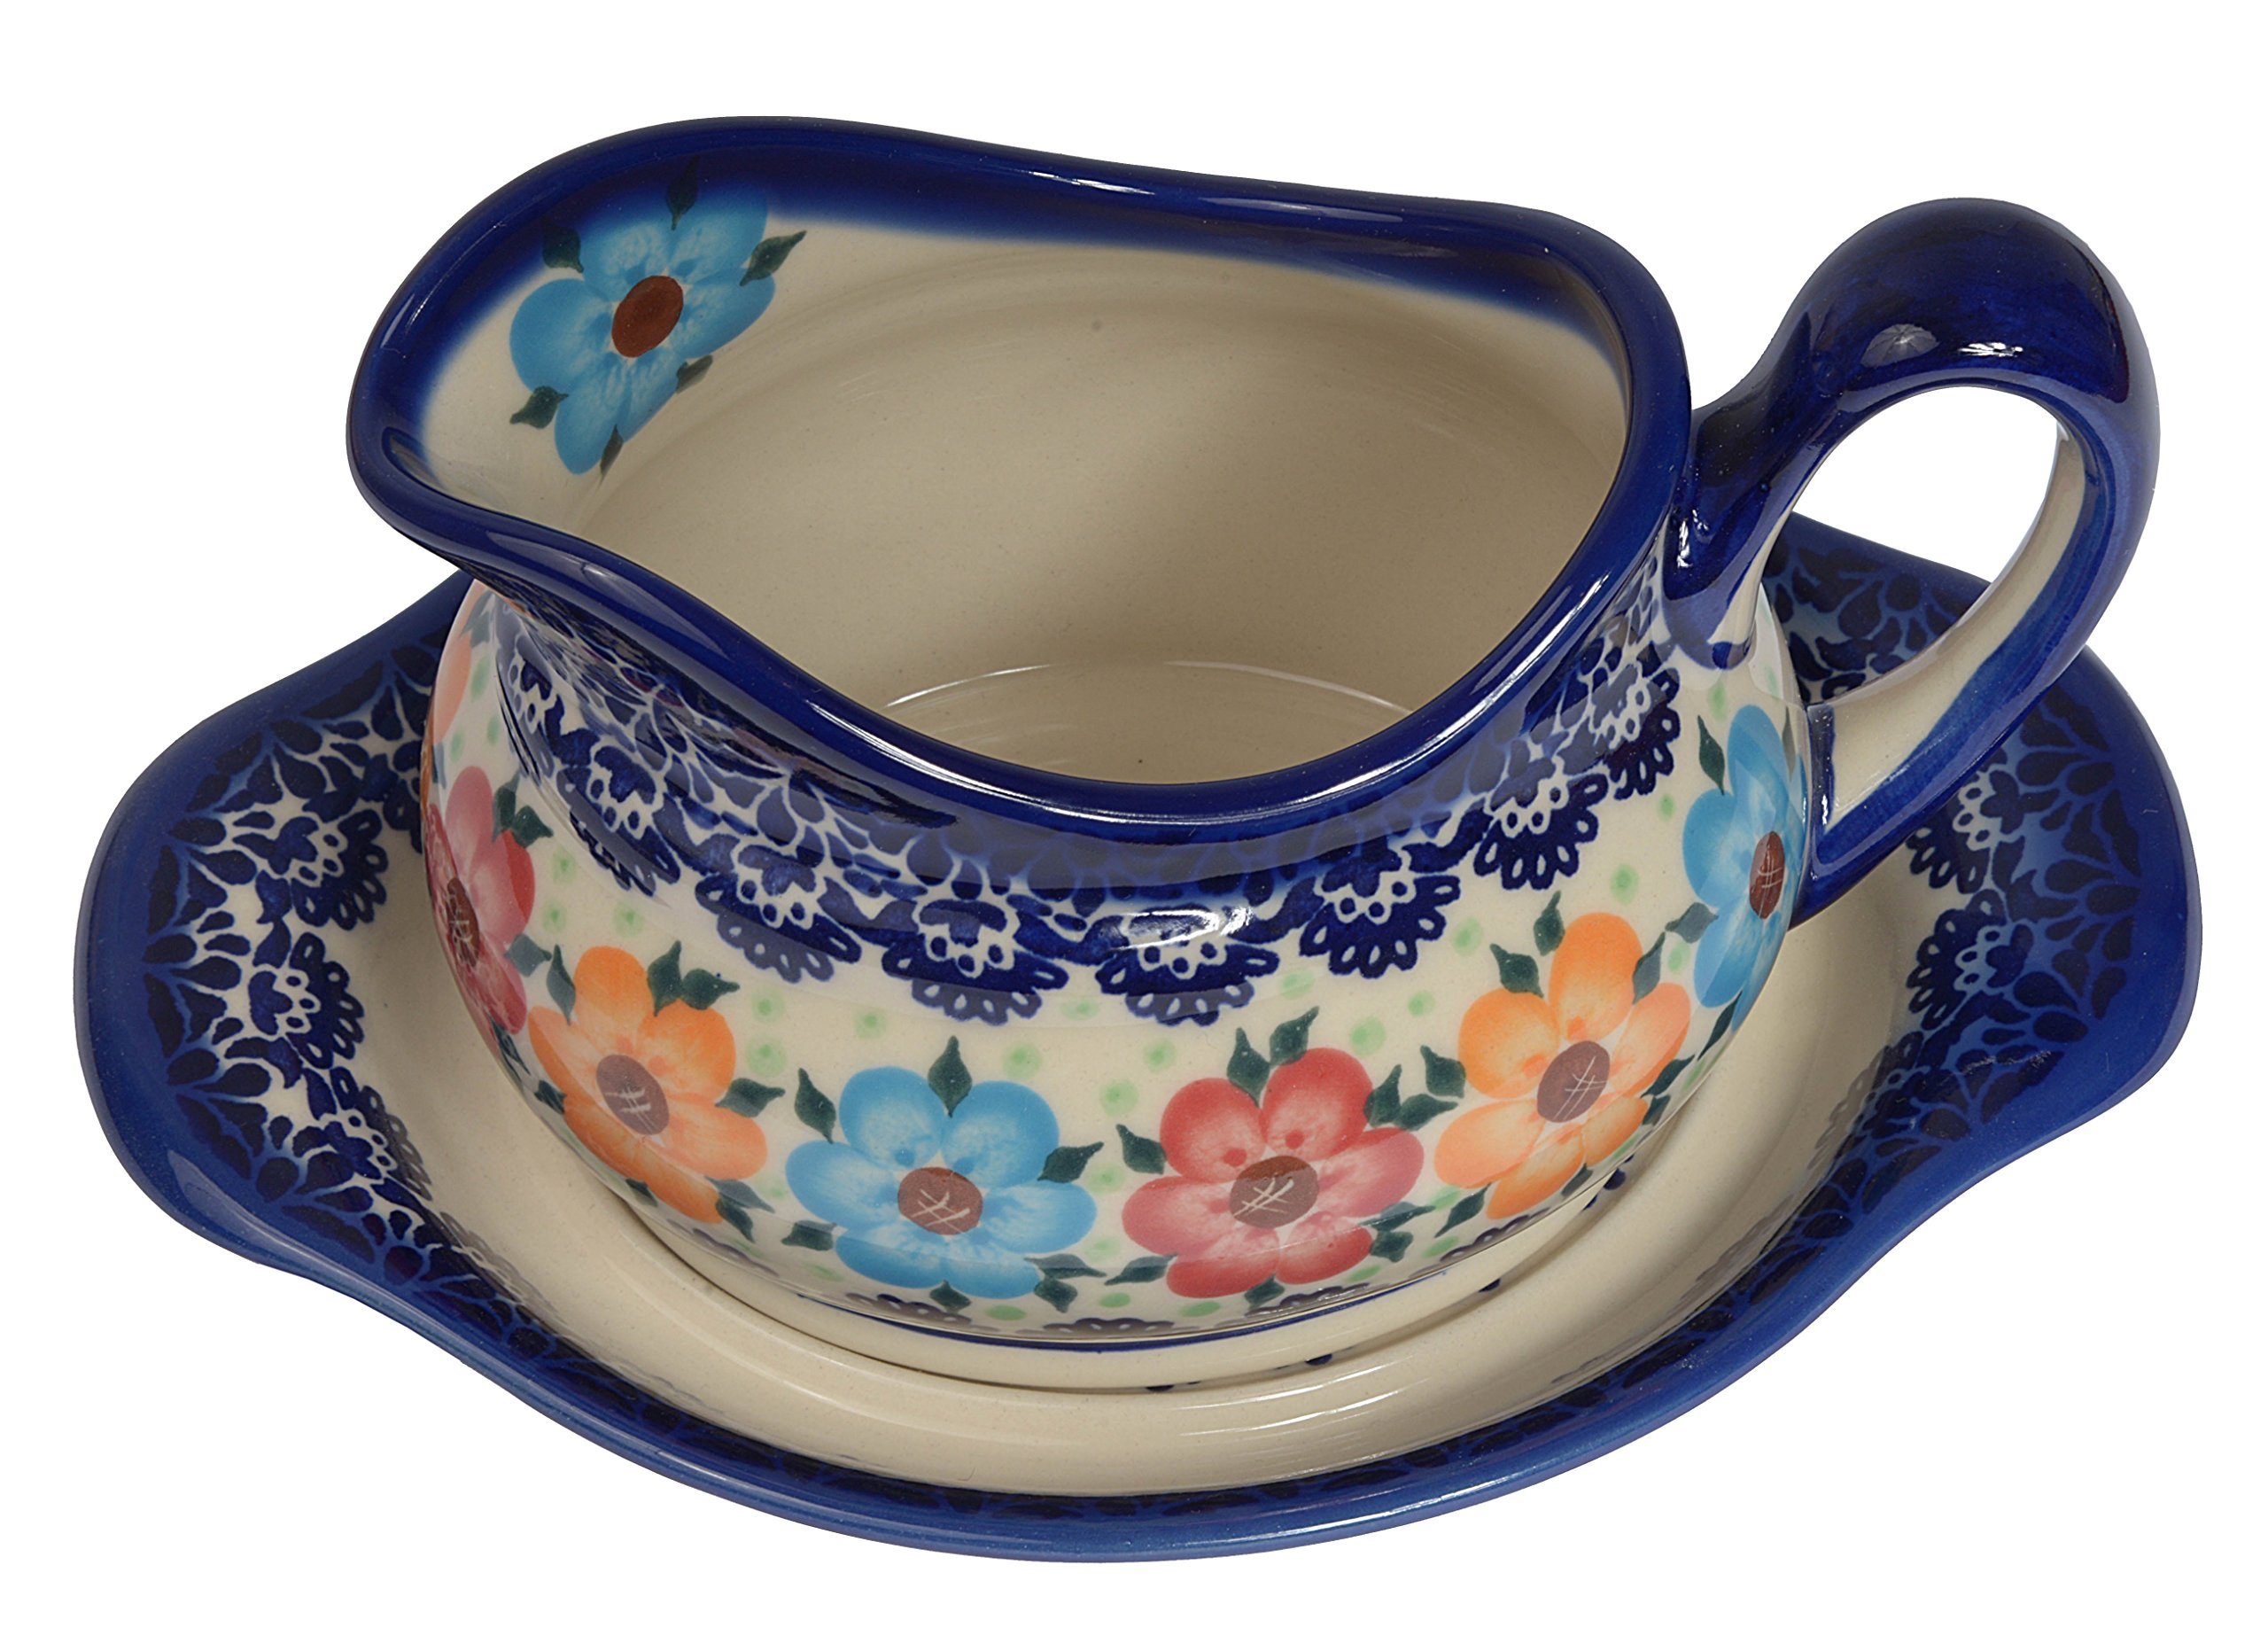 Traditional Polish Pottery, Handcrafted Ceramic Gravy Sauce Boat and Tray (630ml), Boleslawiec Style Pattern, S.301.BLUELACE